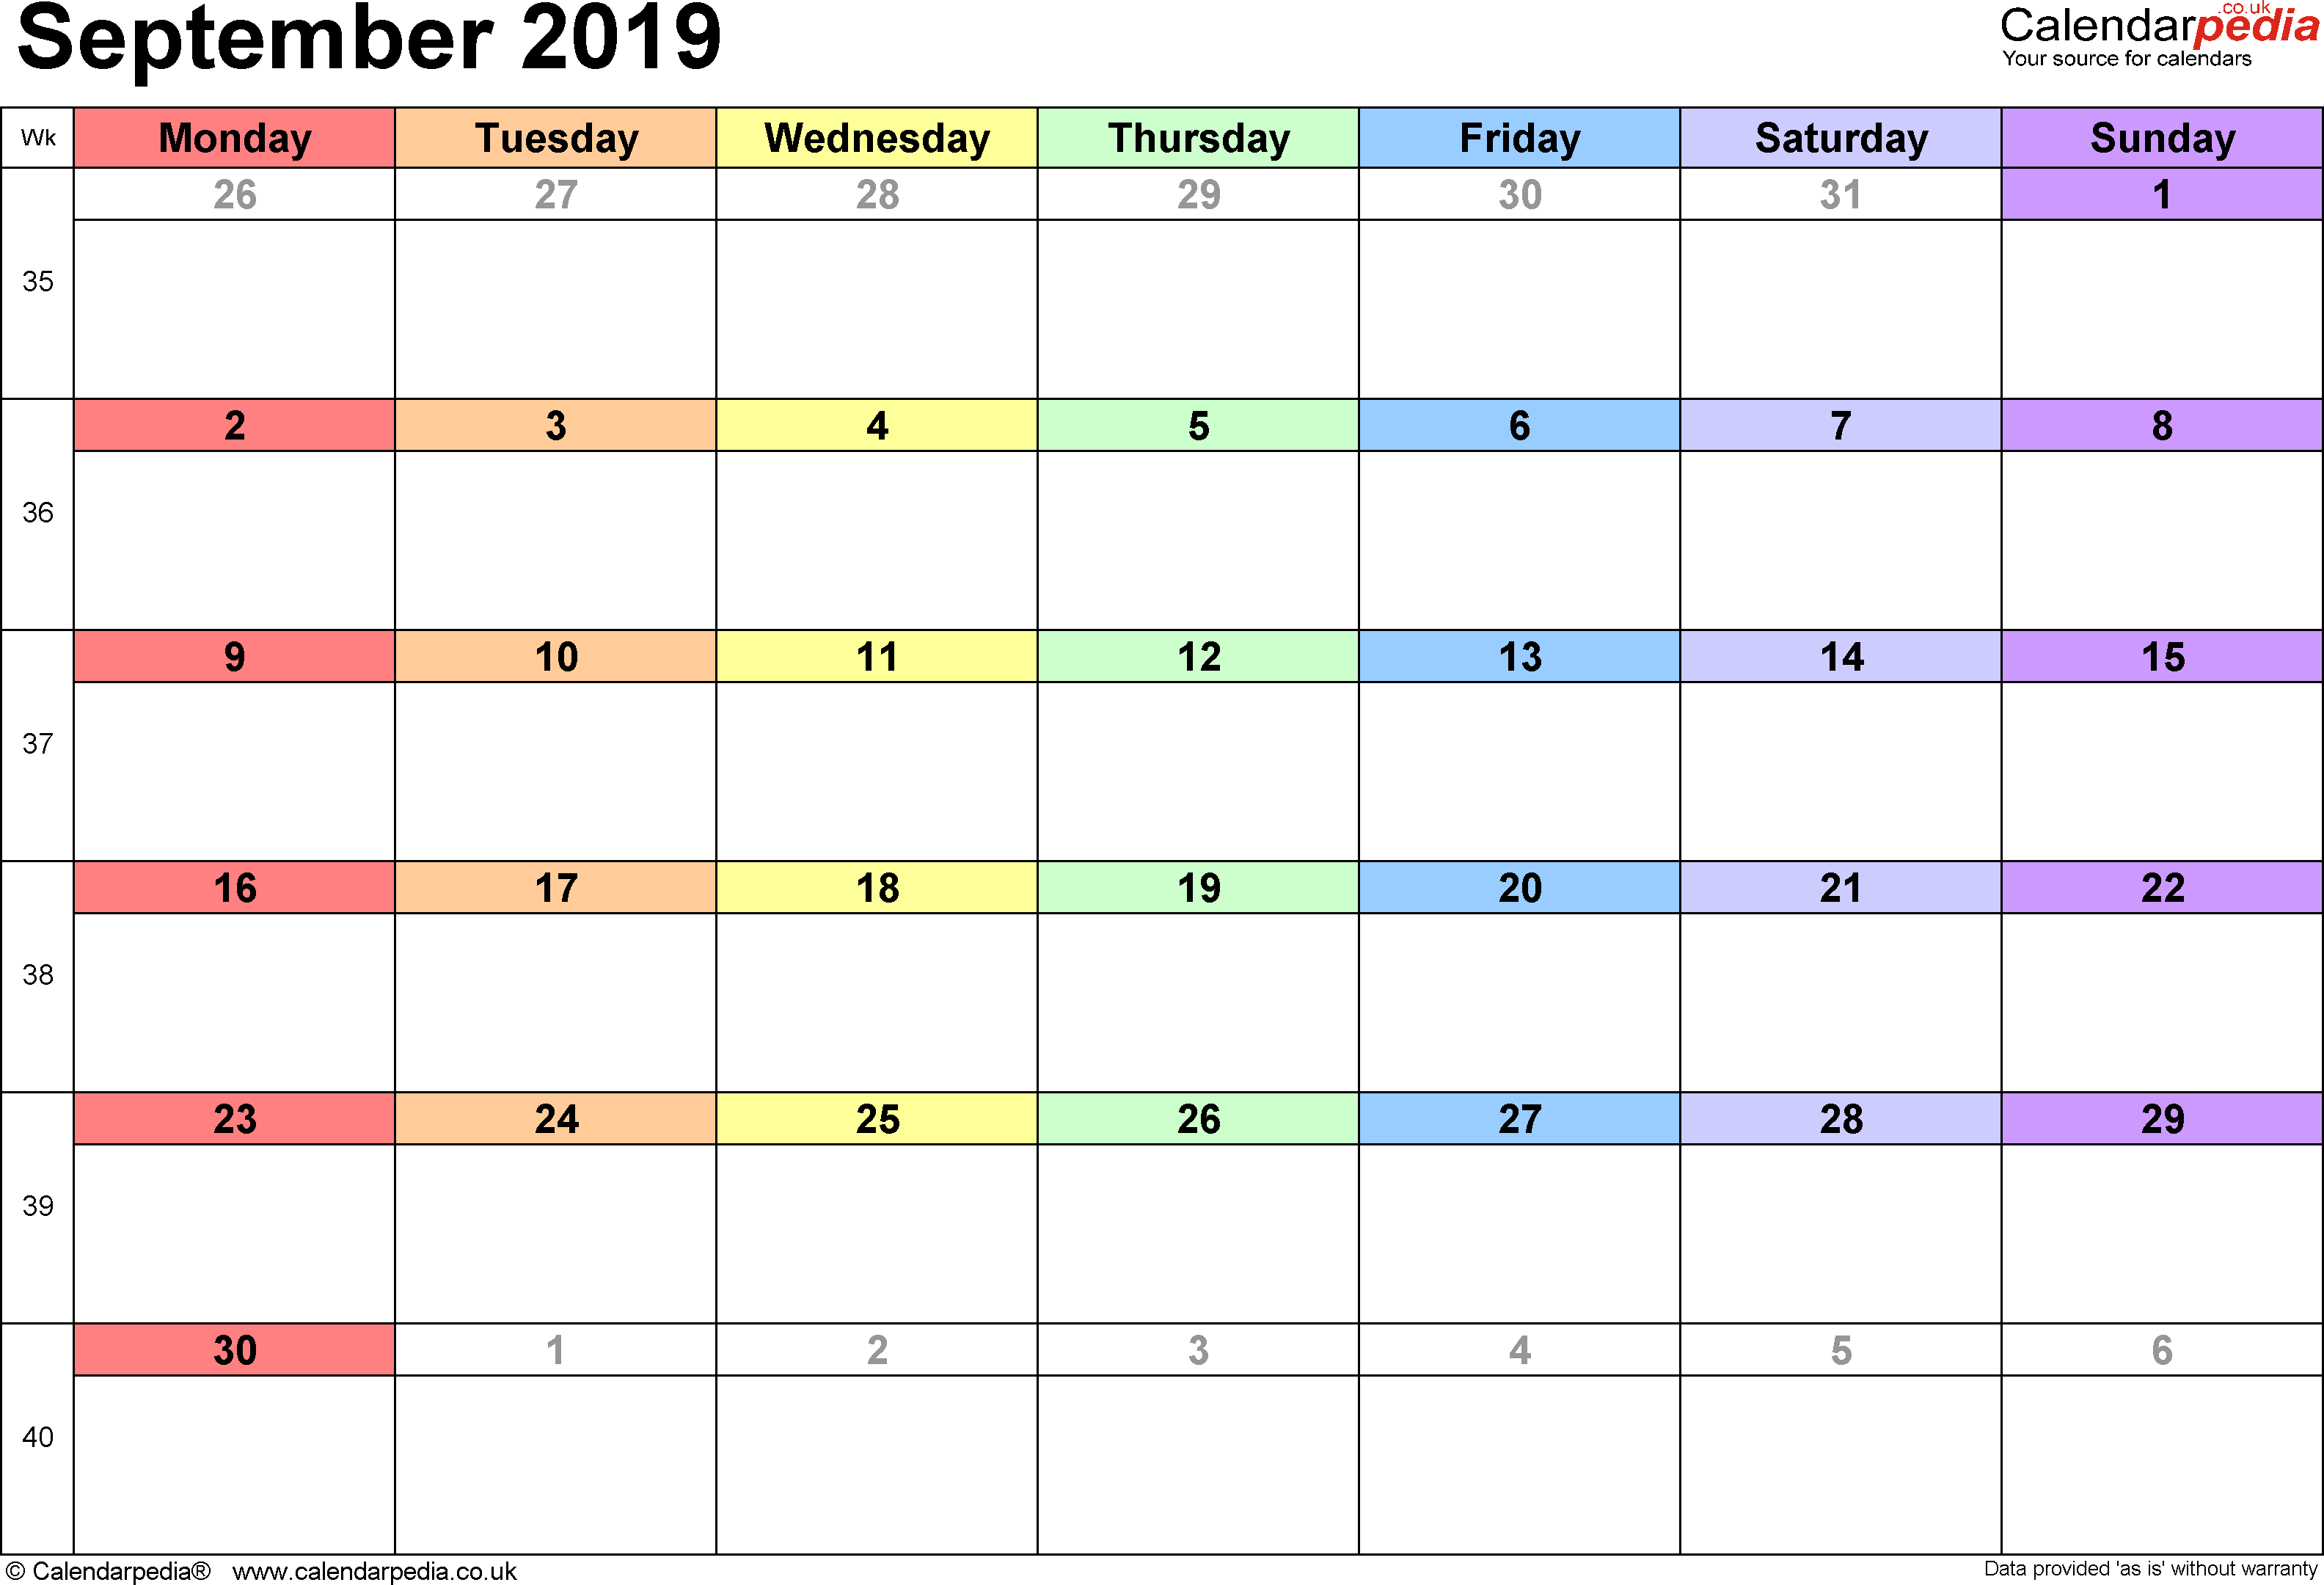 image regarding September Printable Calendar identify Calendar September 2019 United kingdom, Financial institution Holiday seasons, Excel/PDF/Phrase